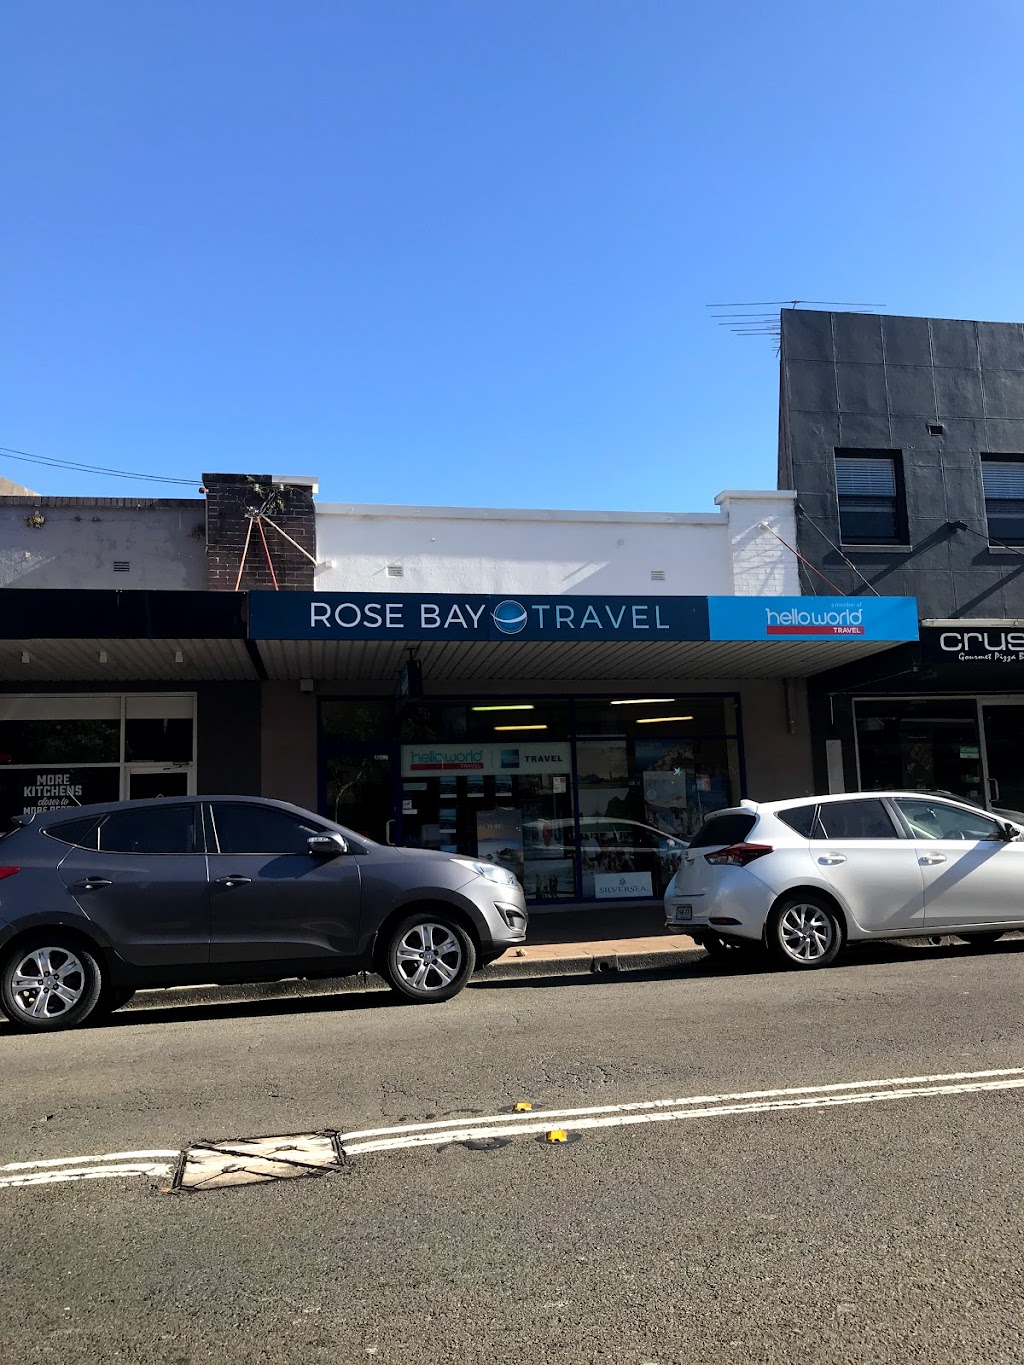 Rose Bay Travel | travel agency | 514 Old South Head Rd, Rose Bay NSW 2029, Australia | 0293718166 OR +61 2 9371 8166